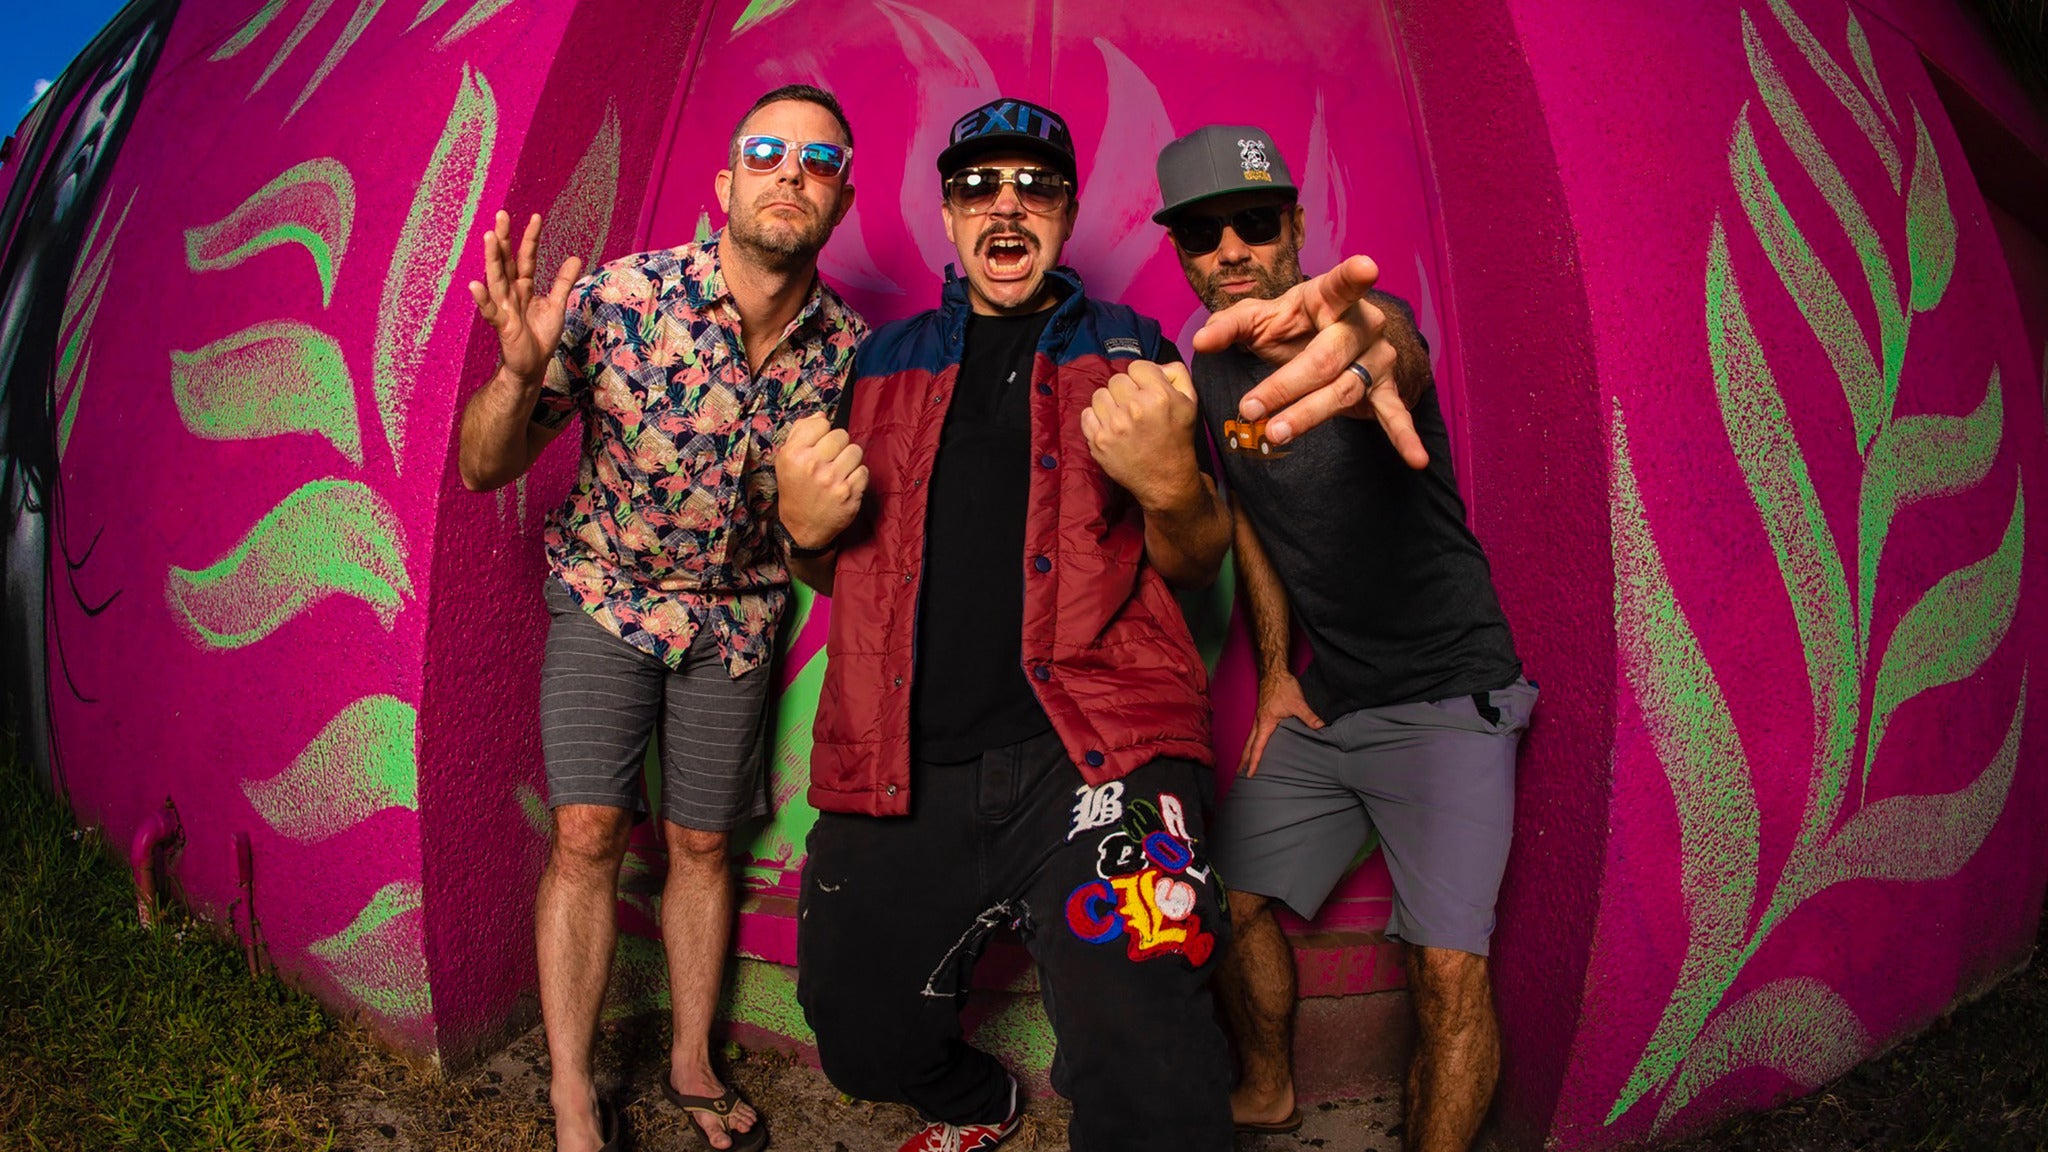 Badfish: Tribute to Sublime - 20 Year Anniversary Tour presale code for early tickets in San Diego